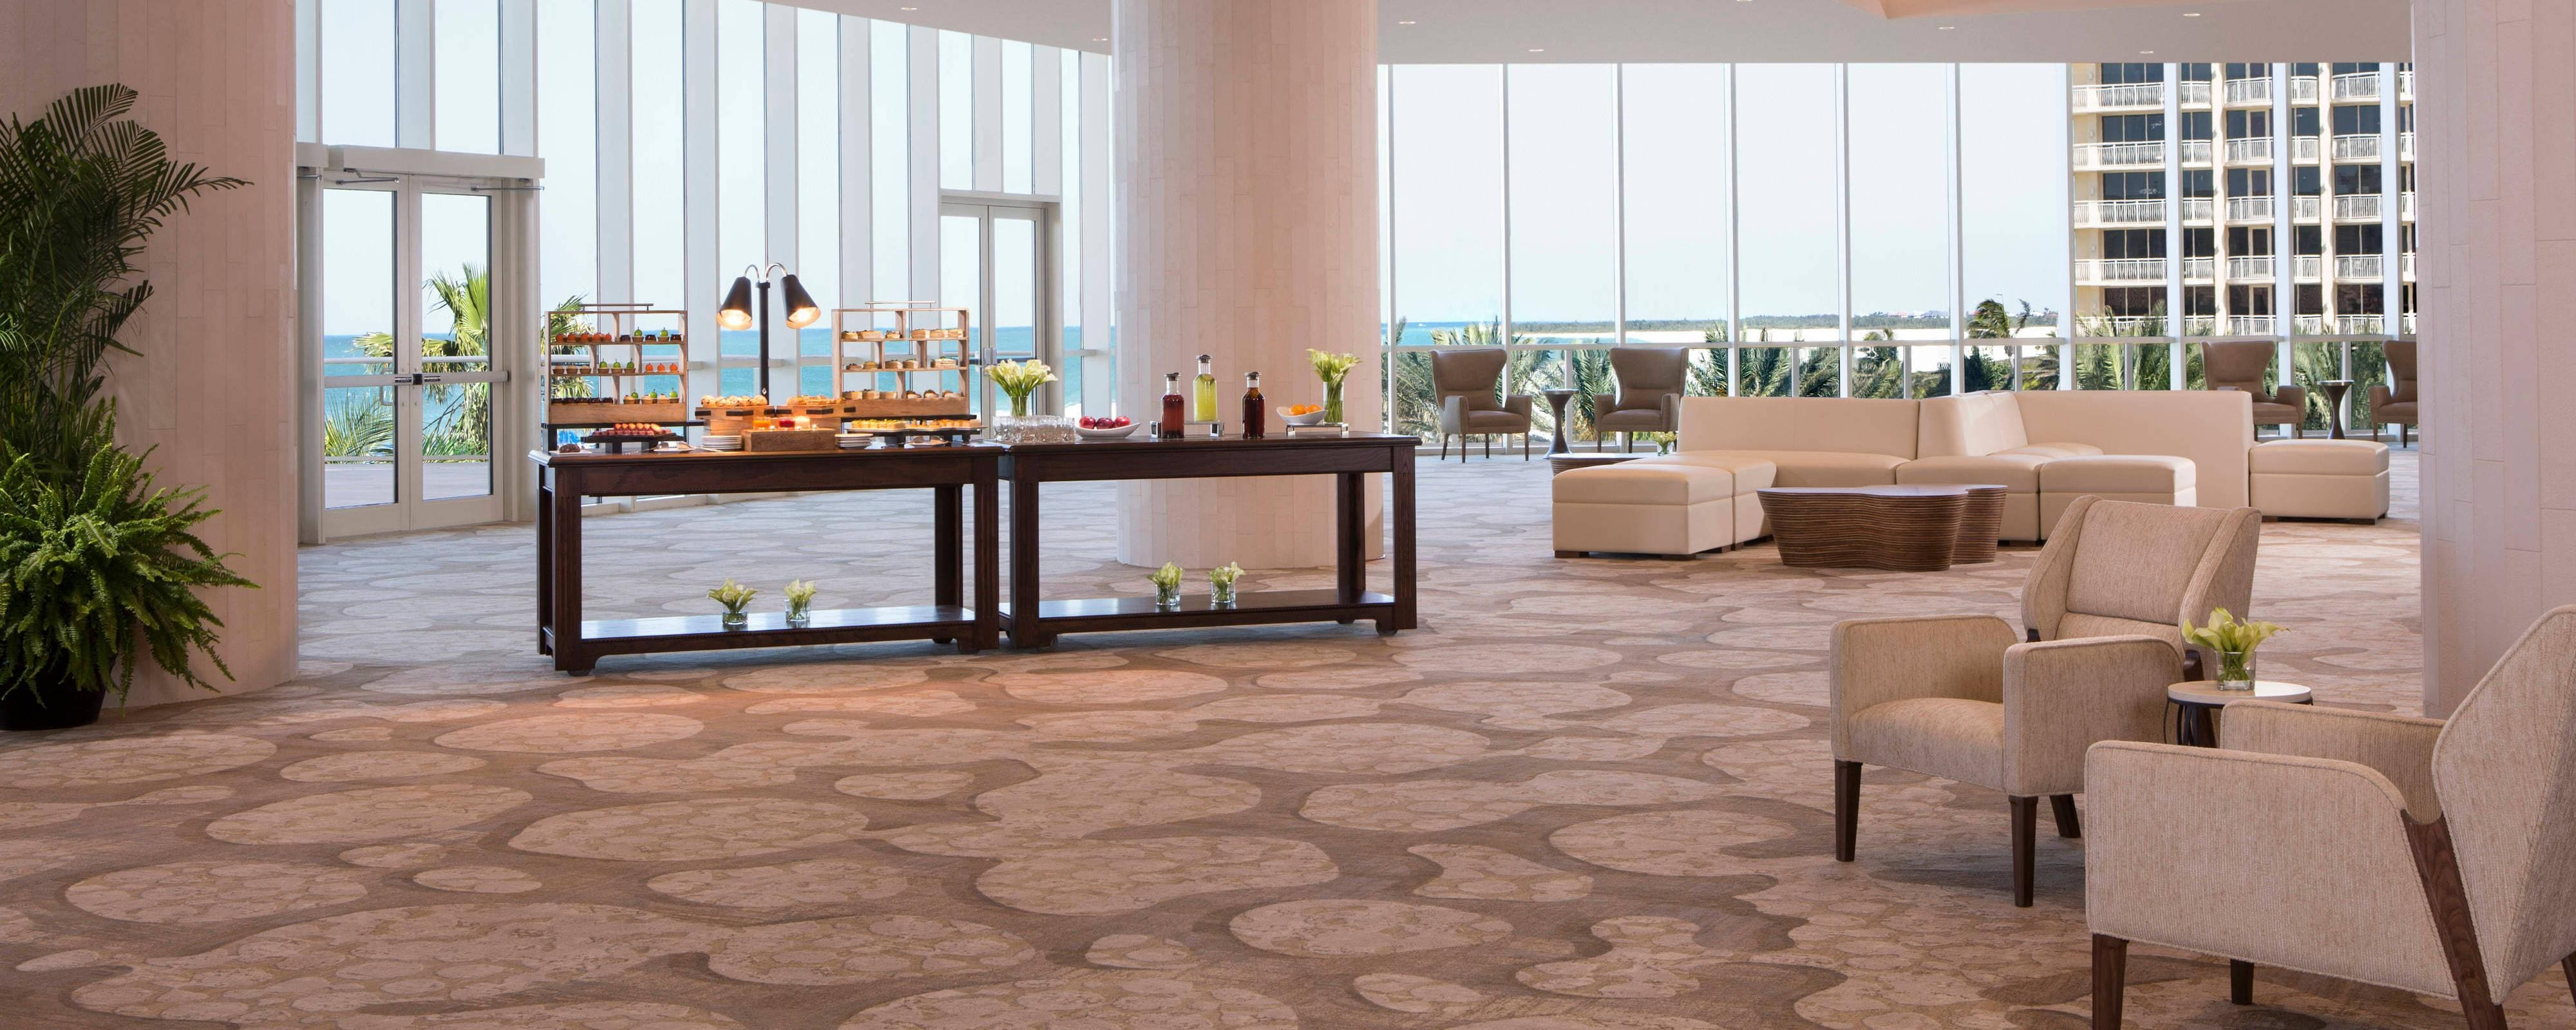 Marco Island Conference Meeting Rooms | JW Marriott Marco Island ...